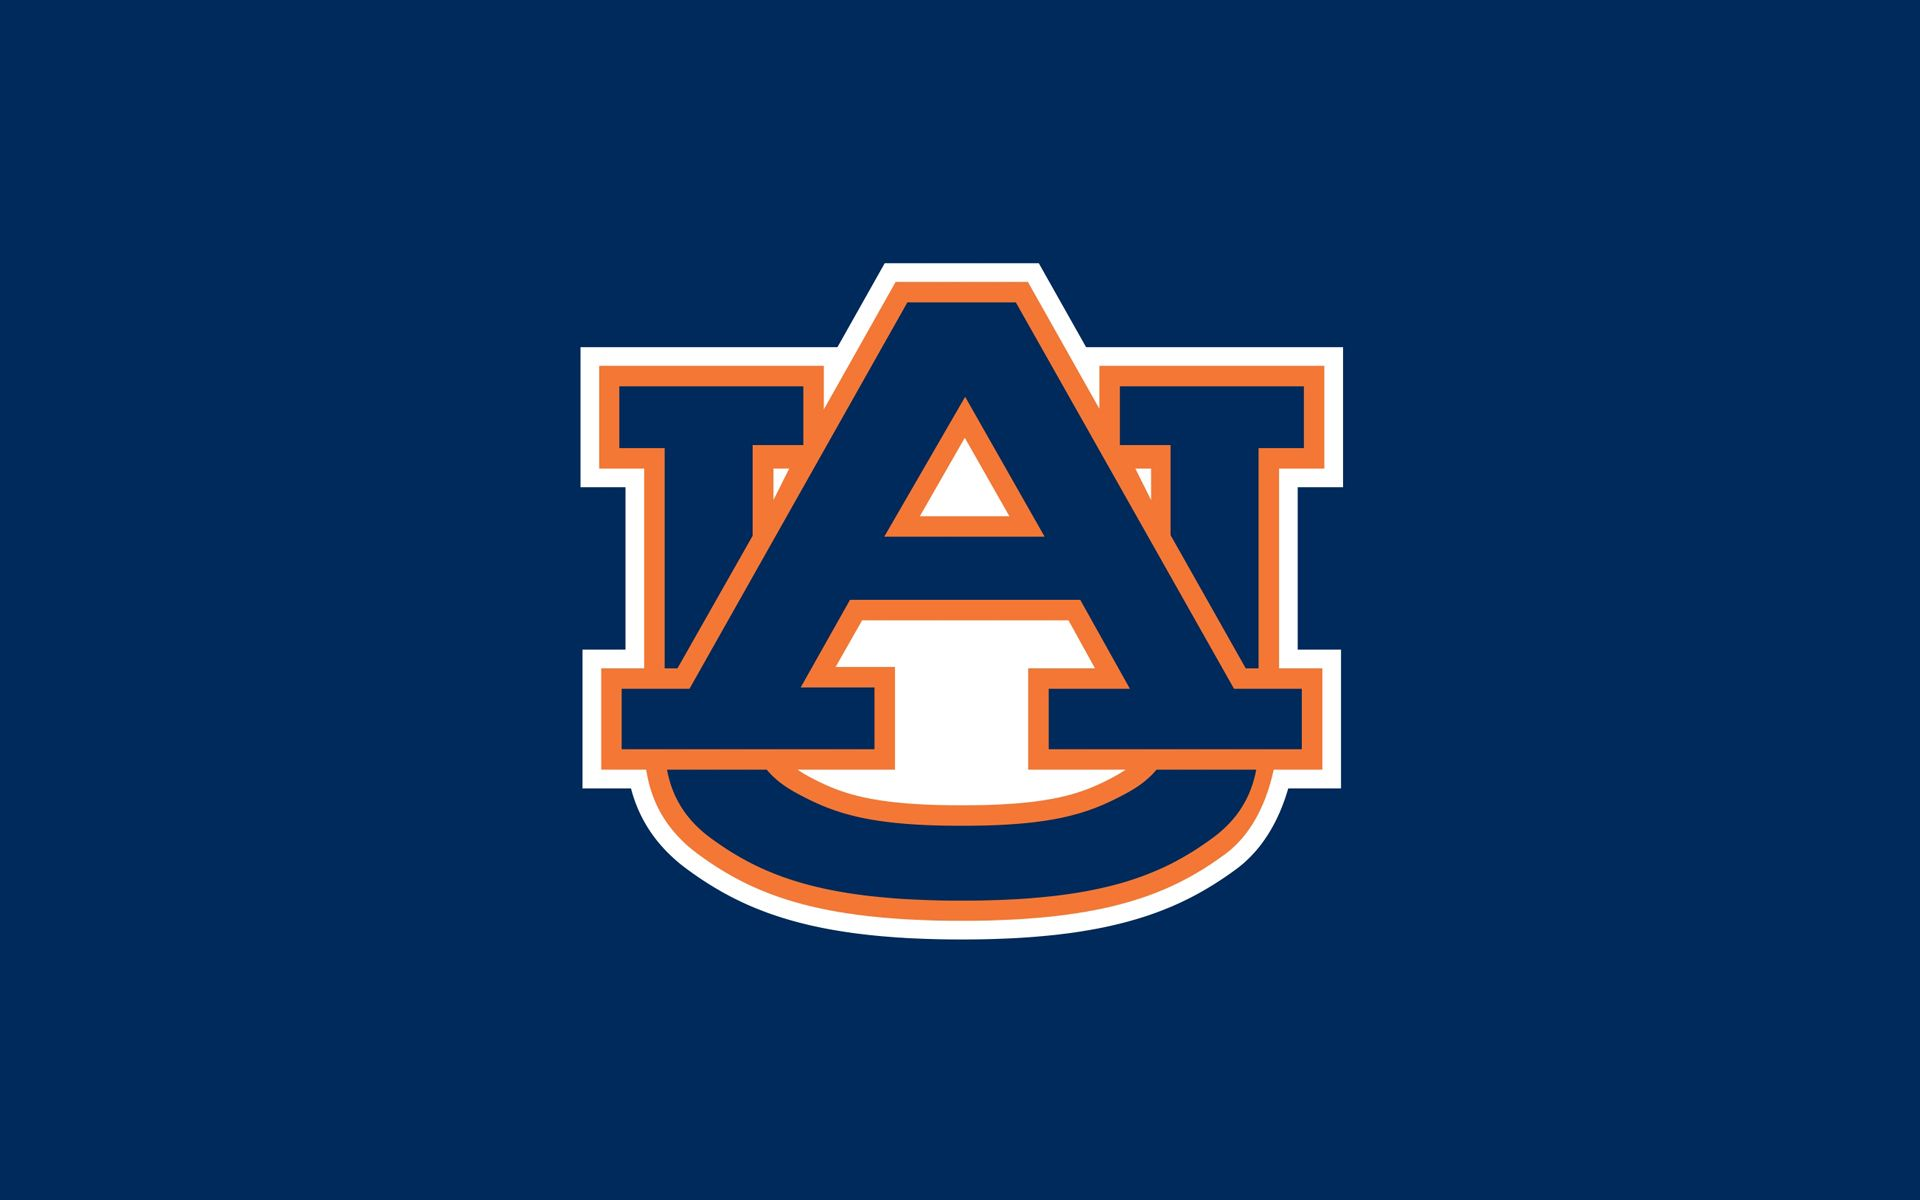 auburn football logo wallpaper auburn tigers logo blue picture rh pinterest com Auburn Tigers Logo Wallpaper Auburn Tigers Logo Wallpaper